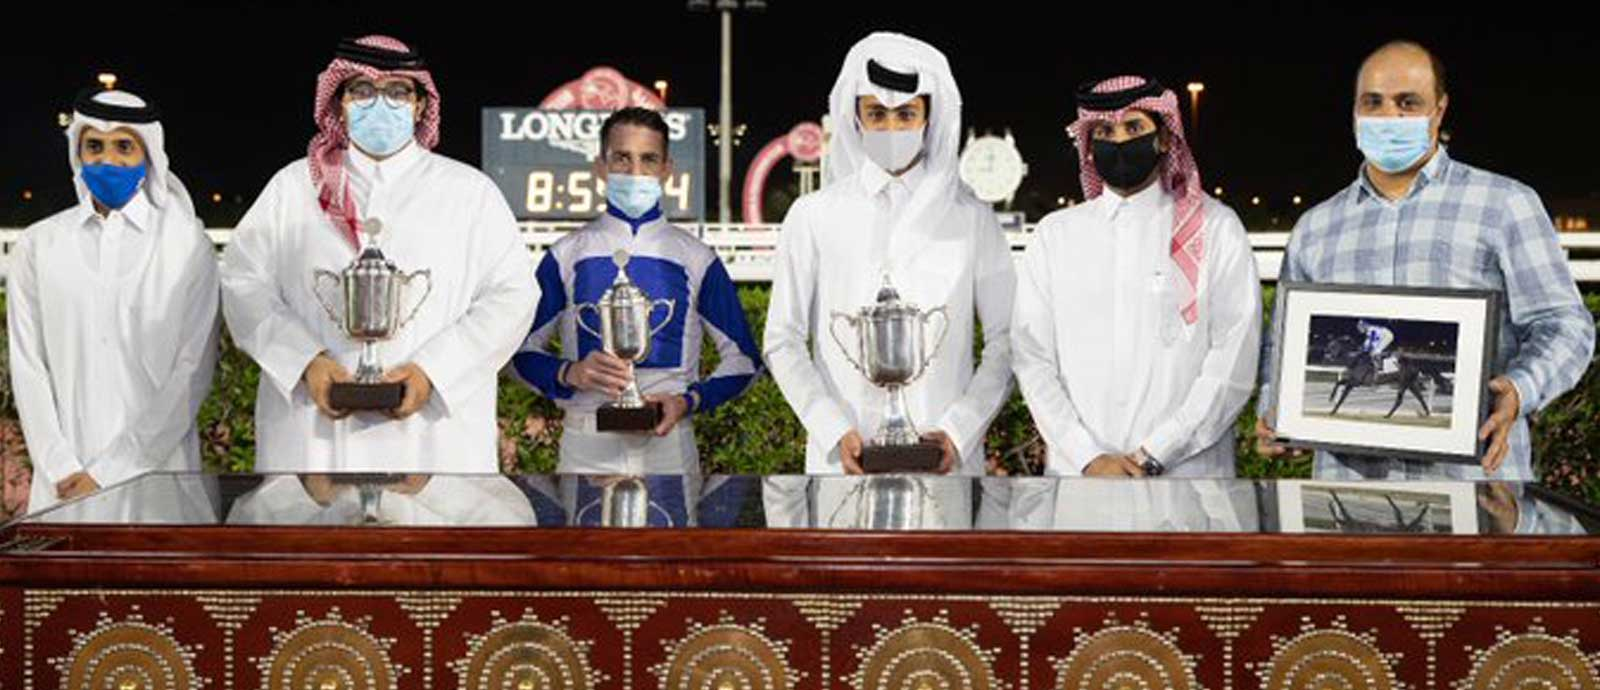 Khalid al-Khalifa Qatar Racing and Equestrian Club Racing manager Mohamed Khalid al-Khalifa (second from right) with the winners of Wathnan Cup